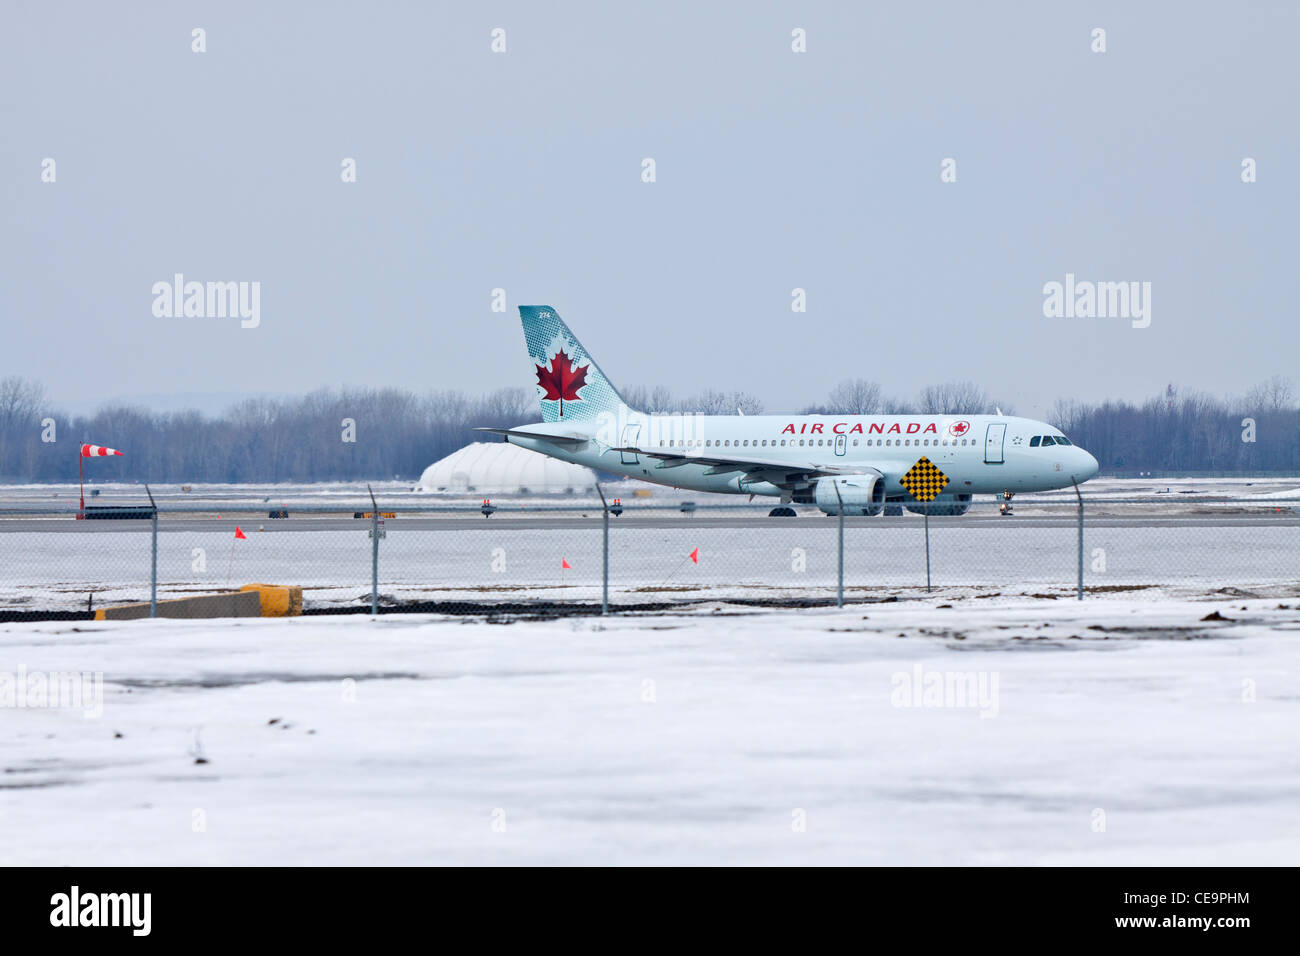 Air Canada plane taxiing on the runway - Stock Image